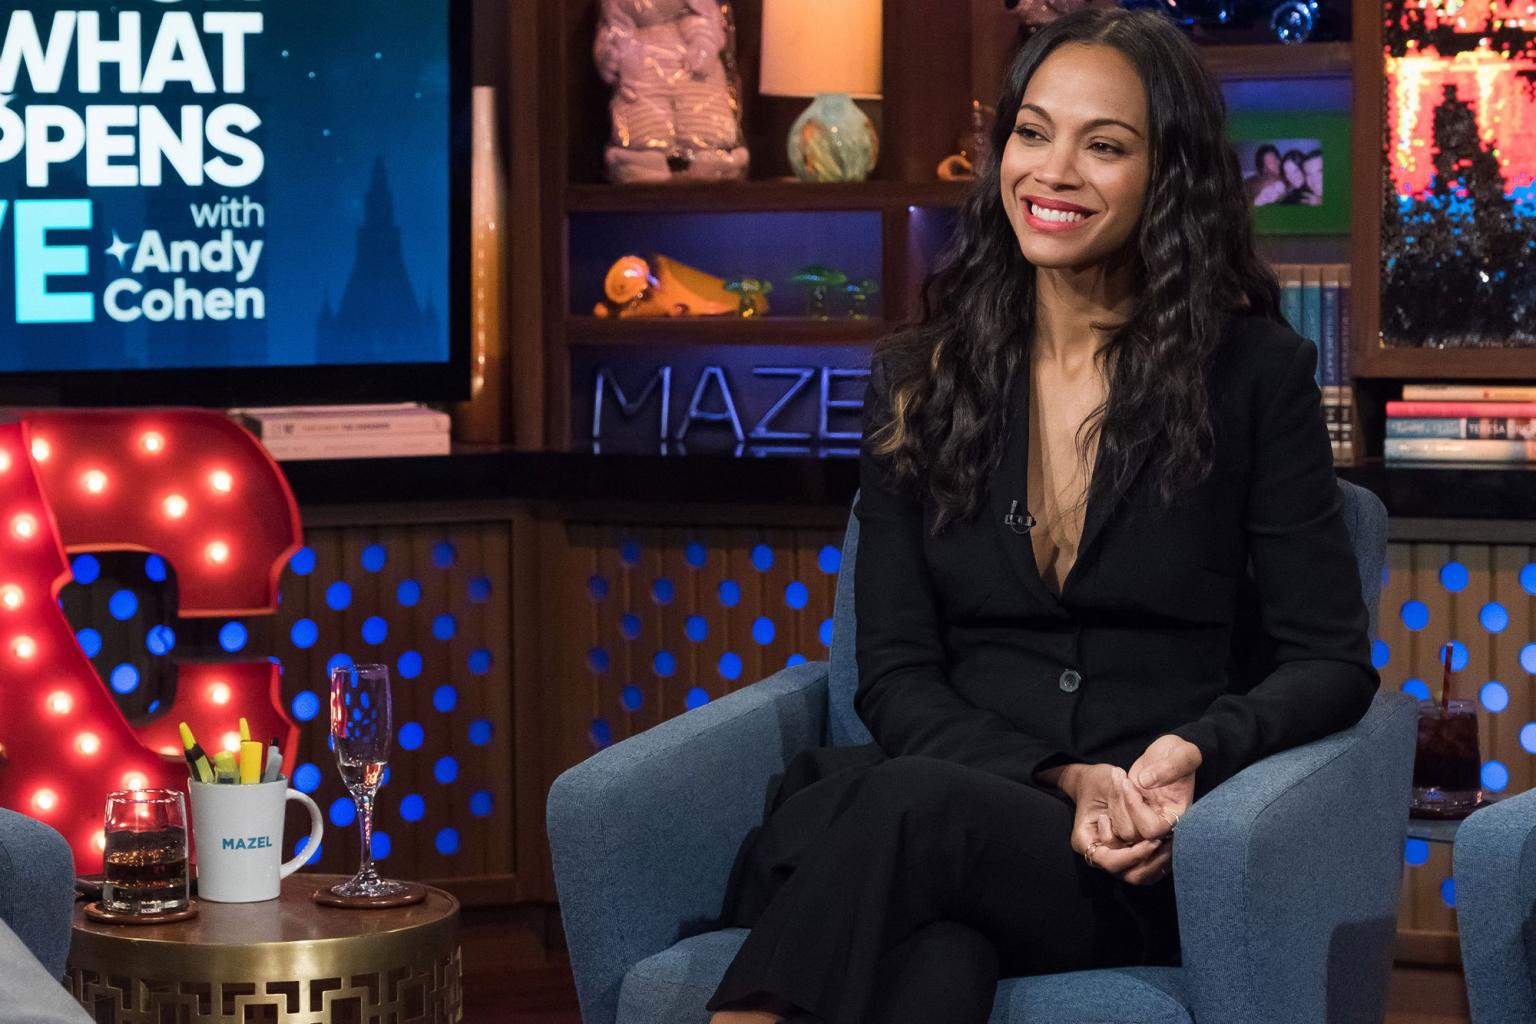 Zoë Saldana Was 'Shocked' When Britney Spears Outed Her Pregnancy: 'We Weren't Ready to Share That'